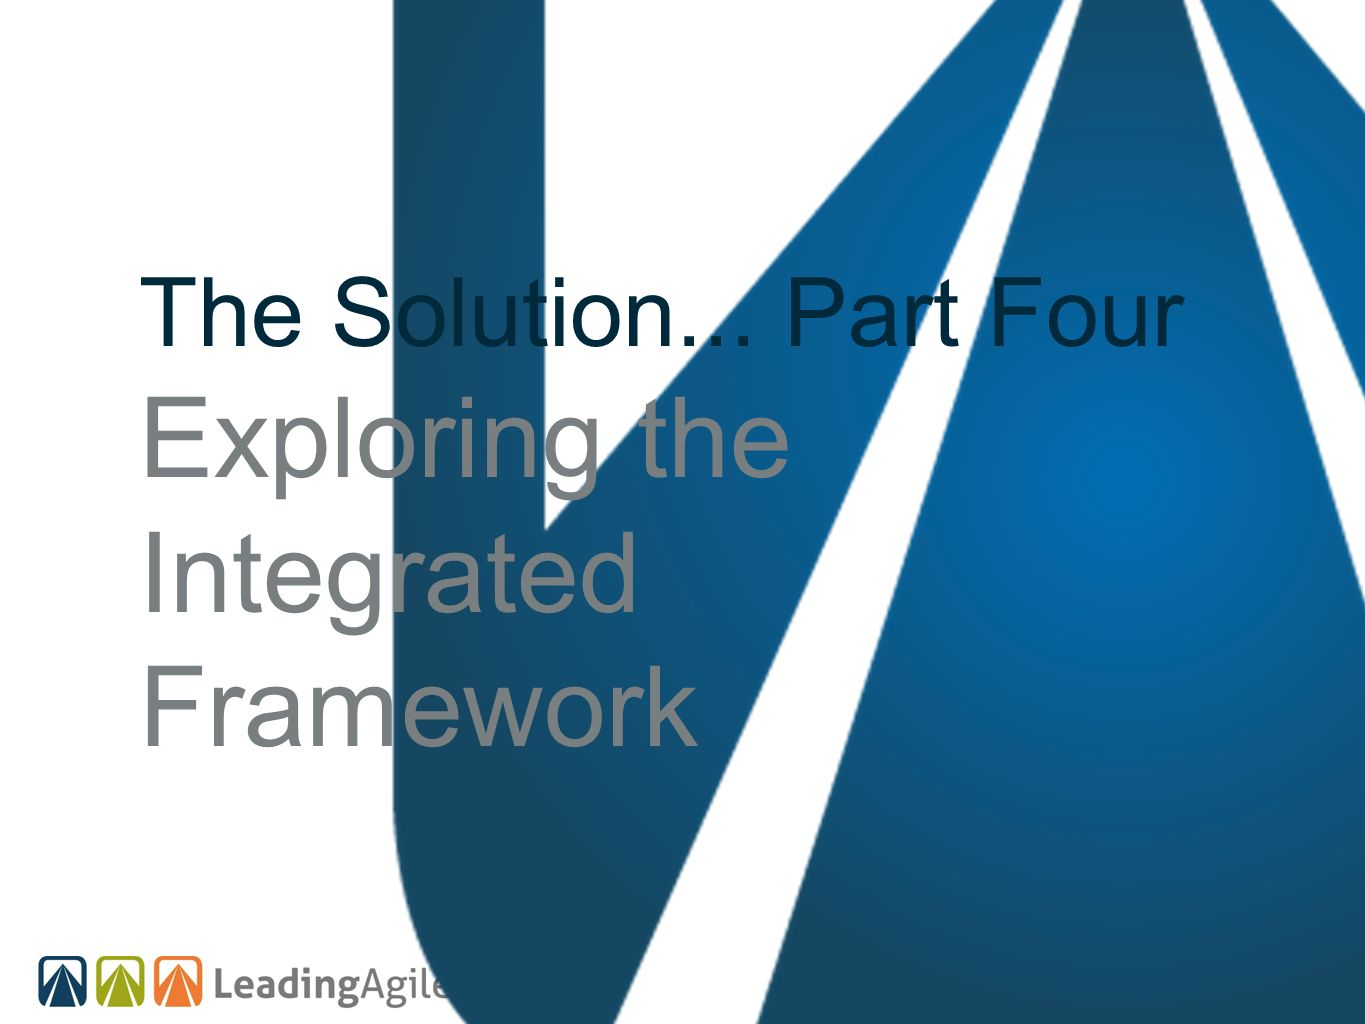 The Solution... Part Four Exploring the Integrated Framework